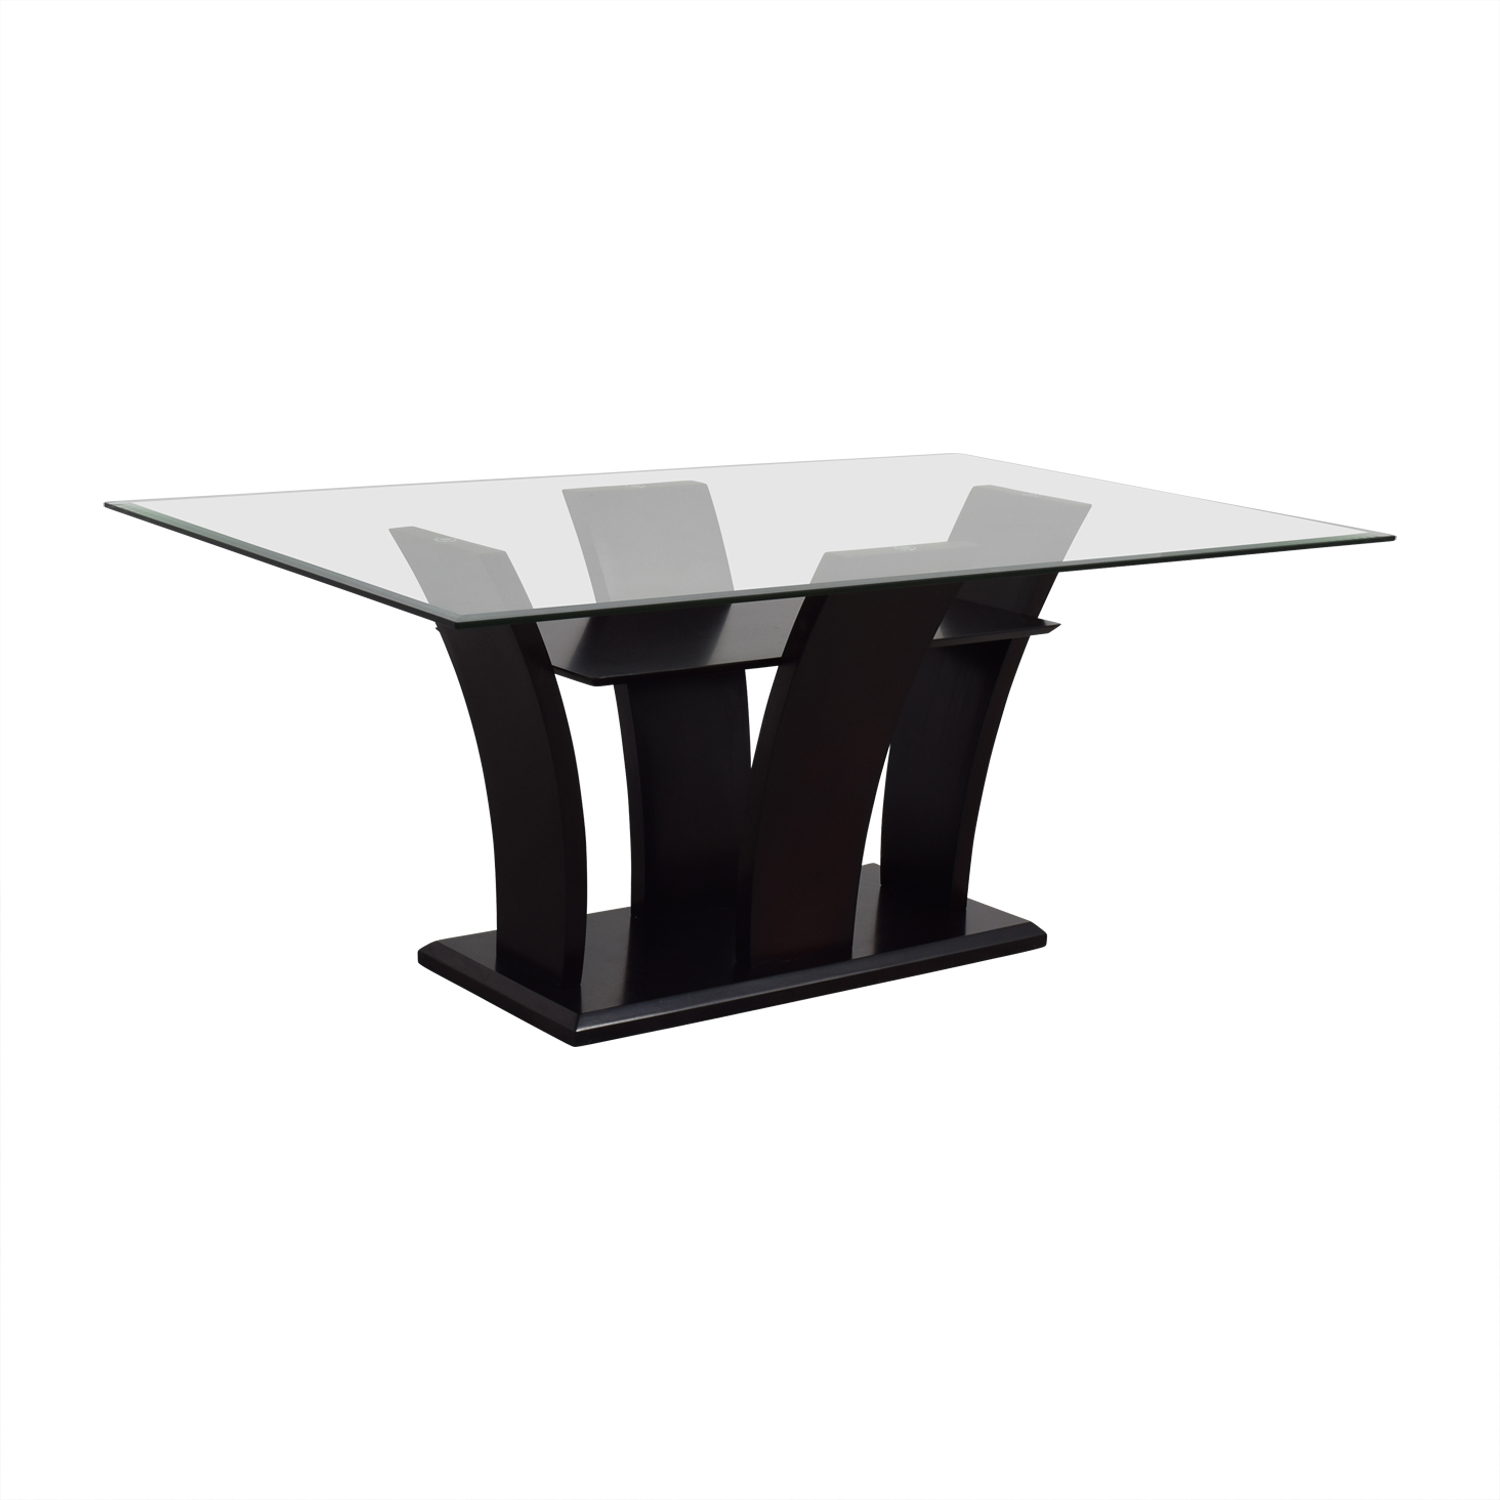 Mahogany Base Glass Top Dining Table price